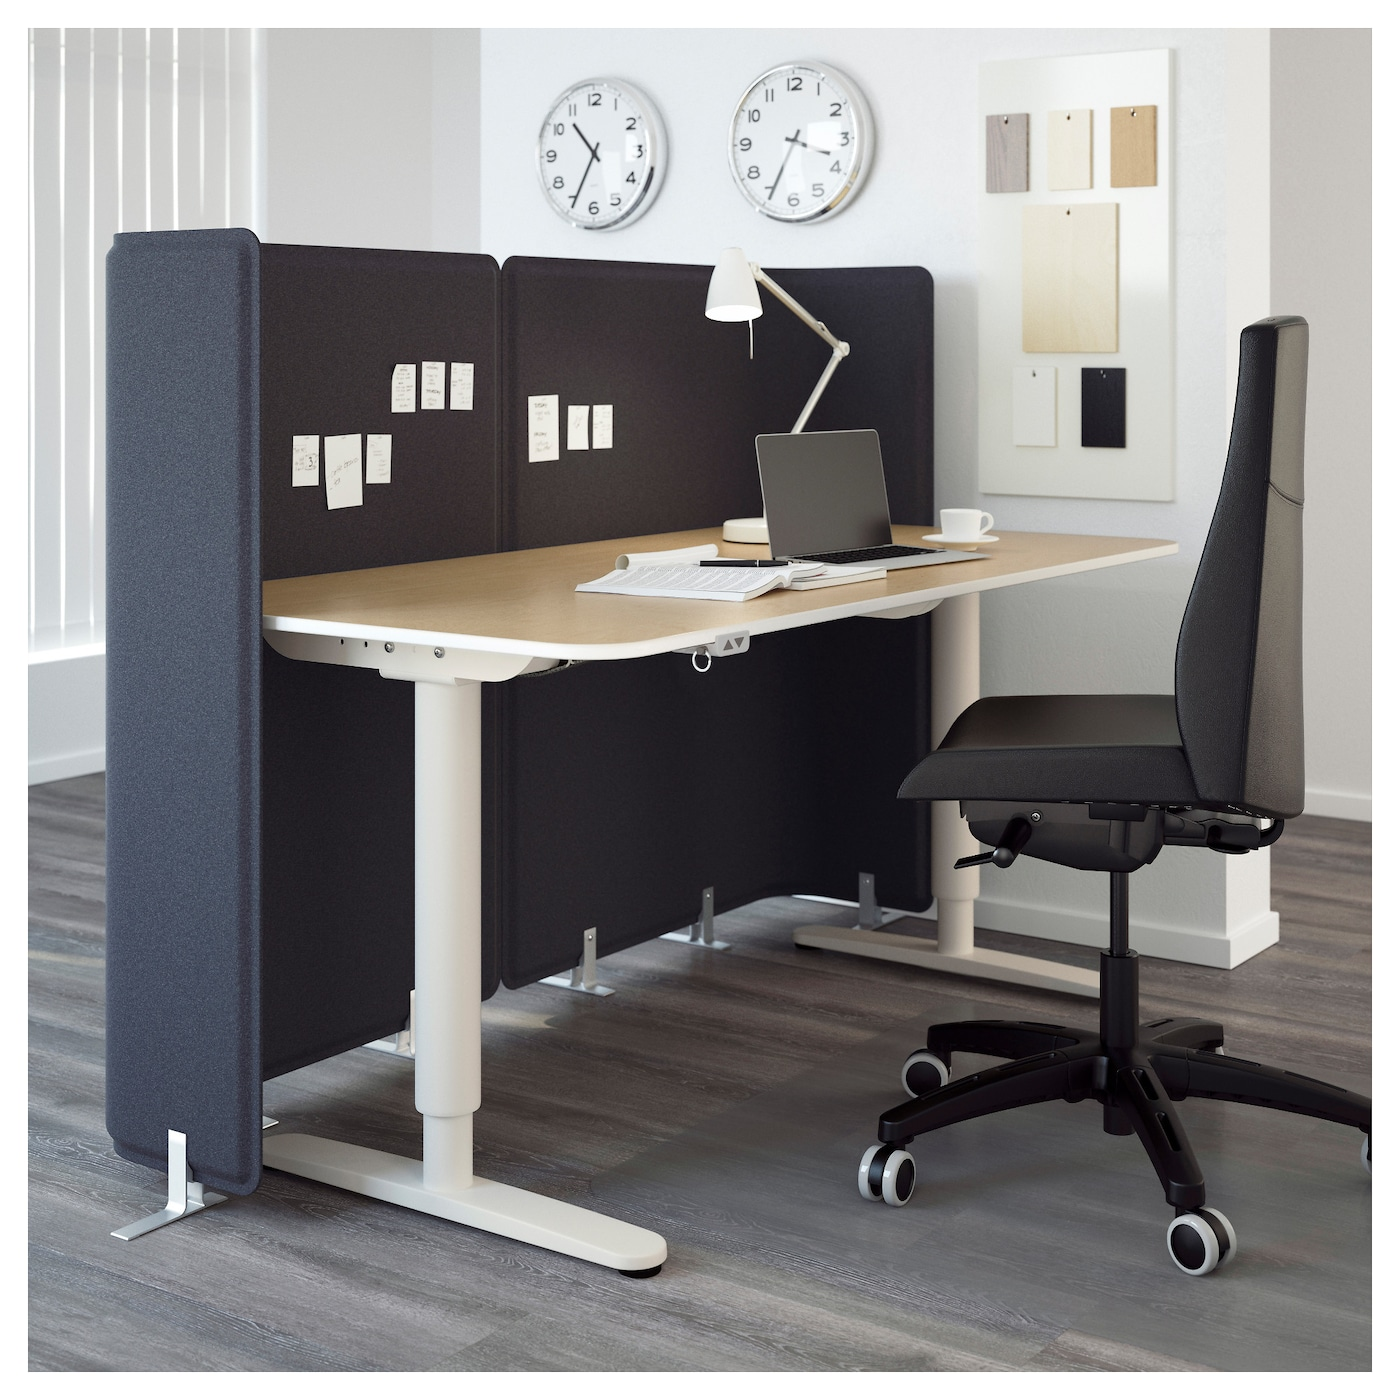 bekant bureau de r ception assis debout plaqu bouleau blanc 160x80 120 cm ikea. Black Bedroom Furniture Sets. Home Design Ideas